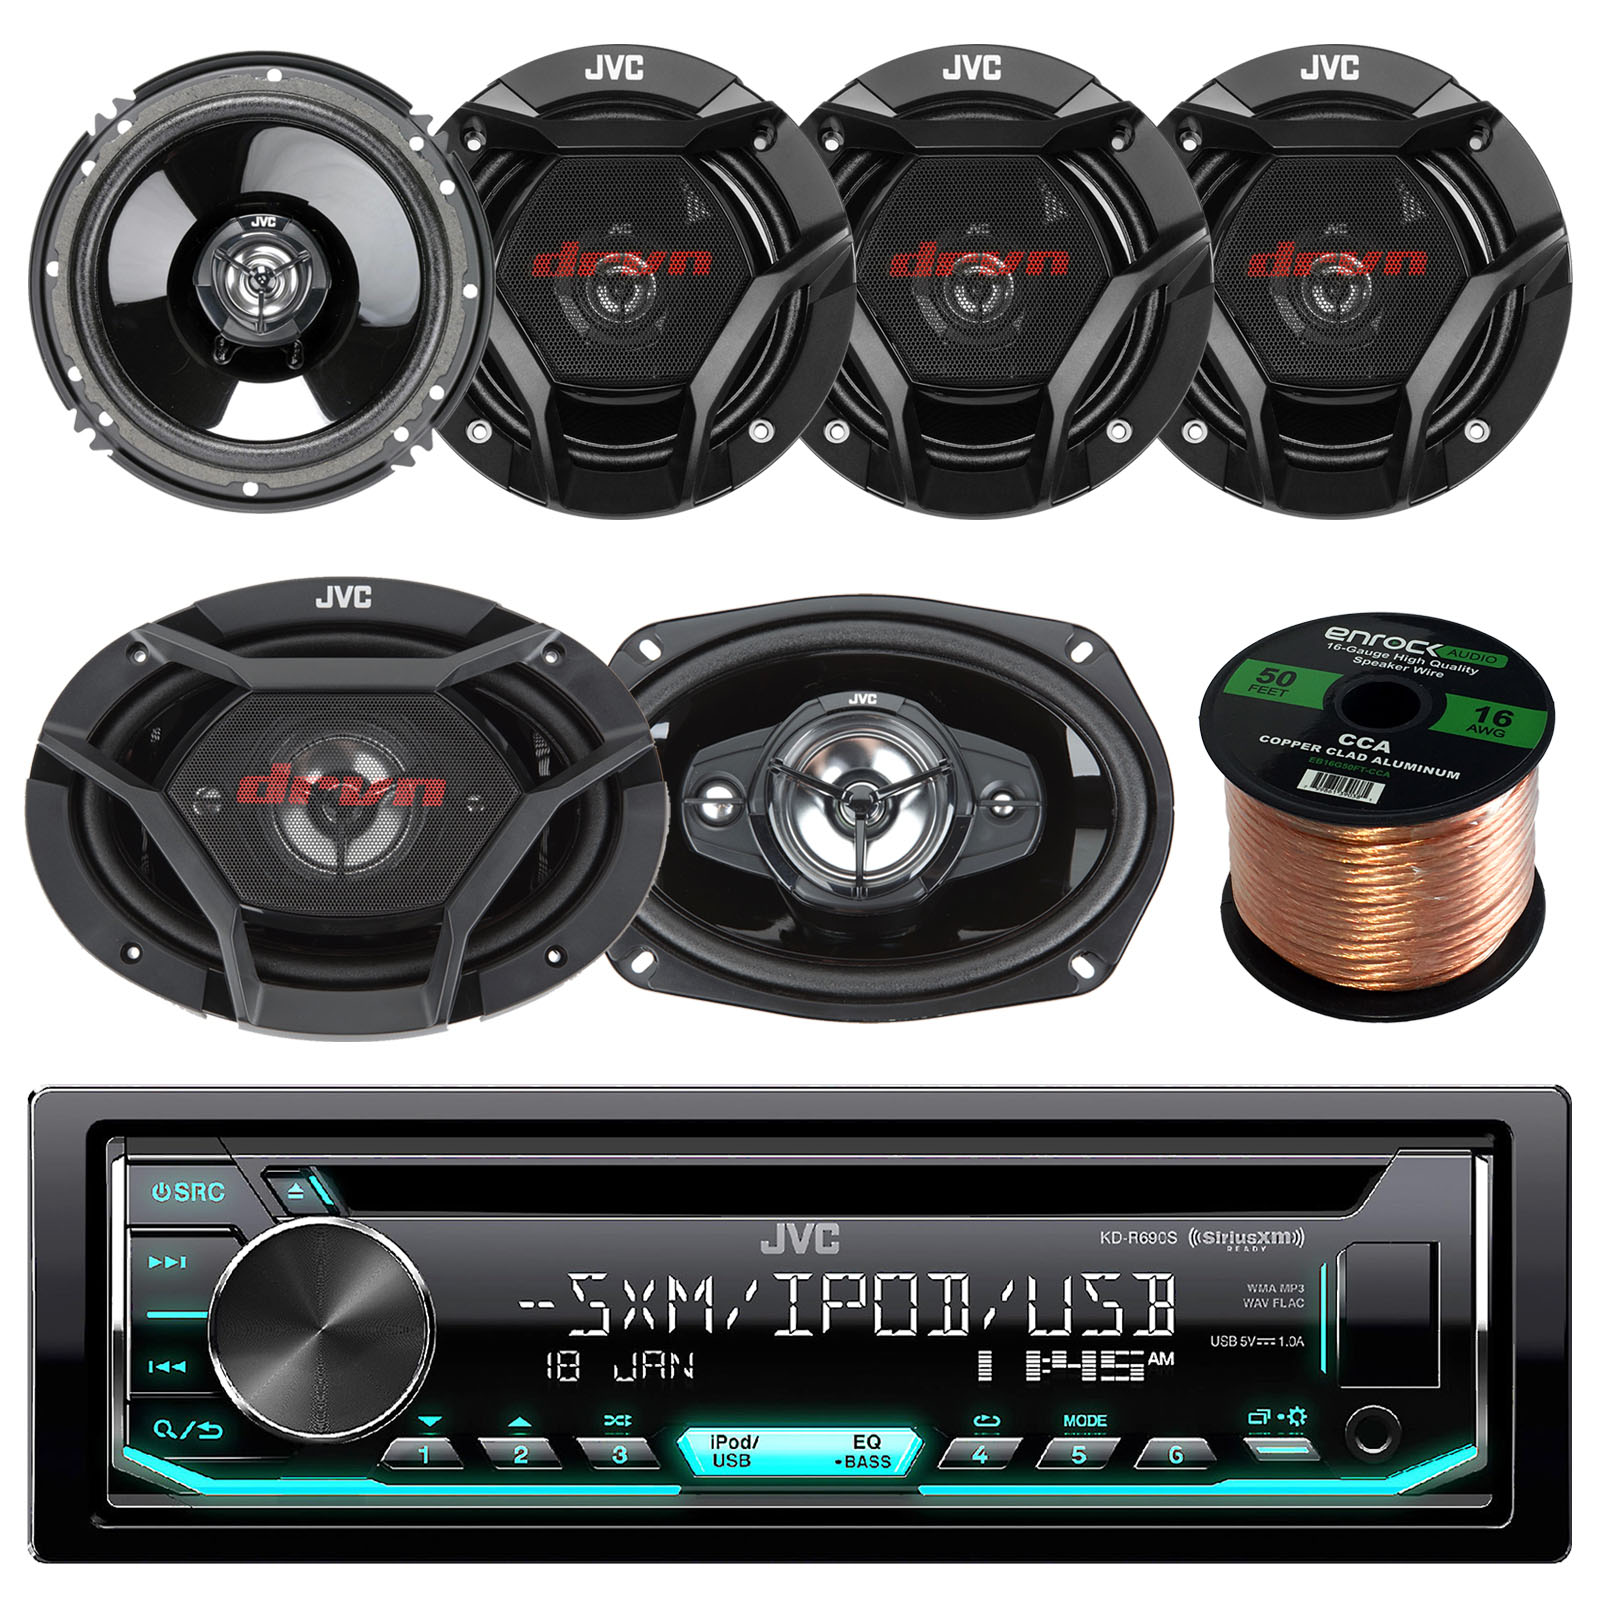 "JVC KD-R690 CD/MP3/WMA Receiver Bundle Combo With 2x JVC CS-DR6930 6x9"" 1000w 3-Way Vehicle Stereo Coaxial Speakers + 4x CS-DR620 6.5"" 300W 2-Way Audio Speakers + Enrock 50 Foot 16 Gauge Speaker Wire"